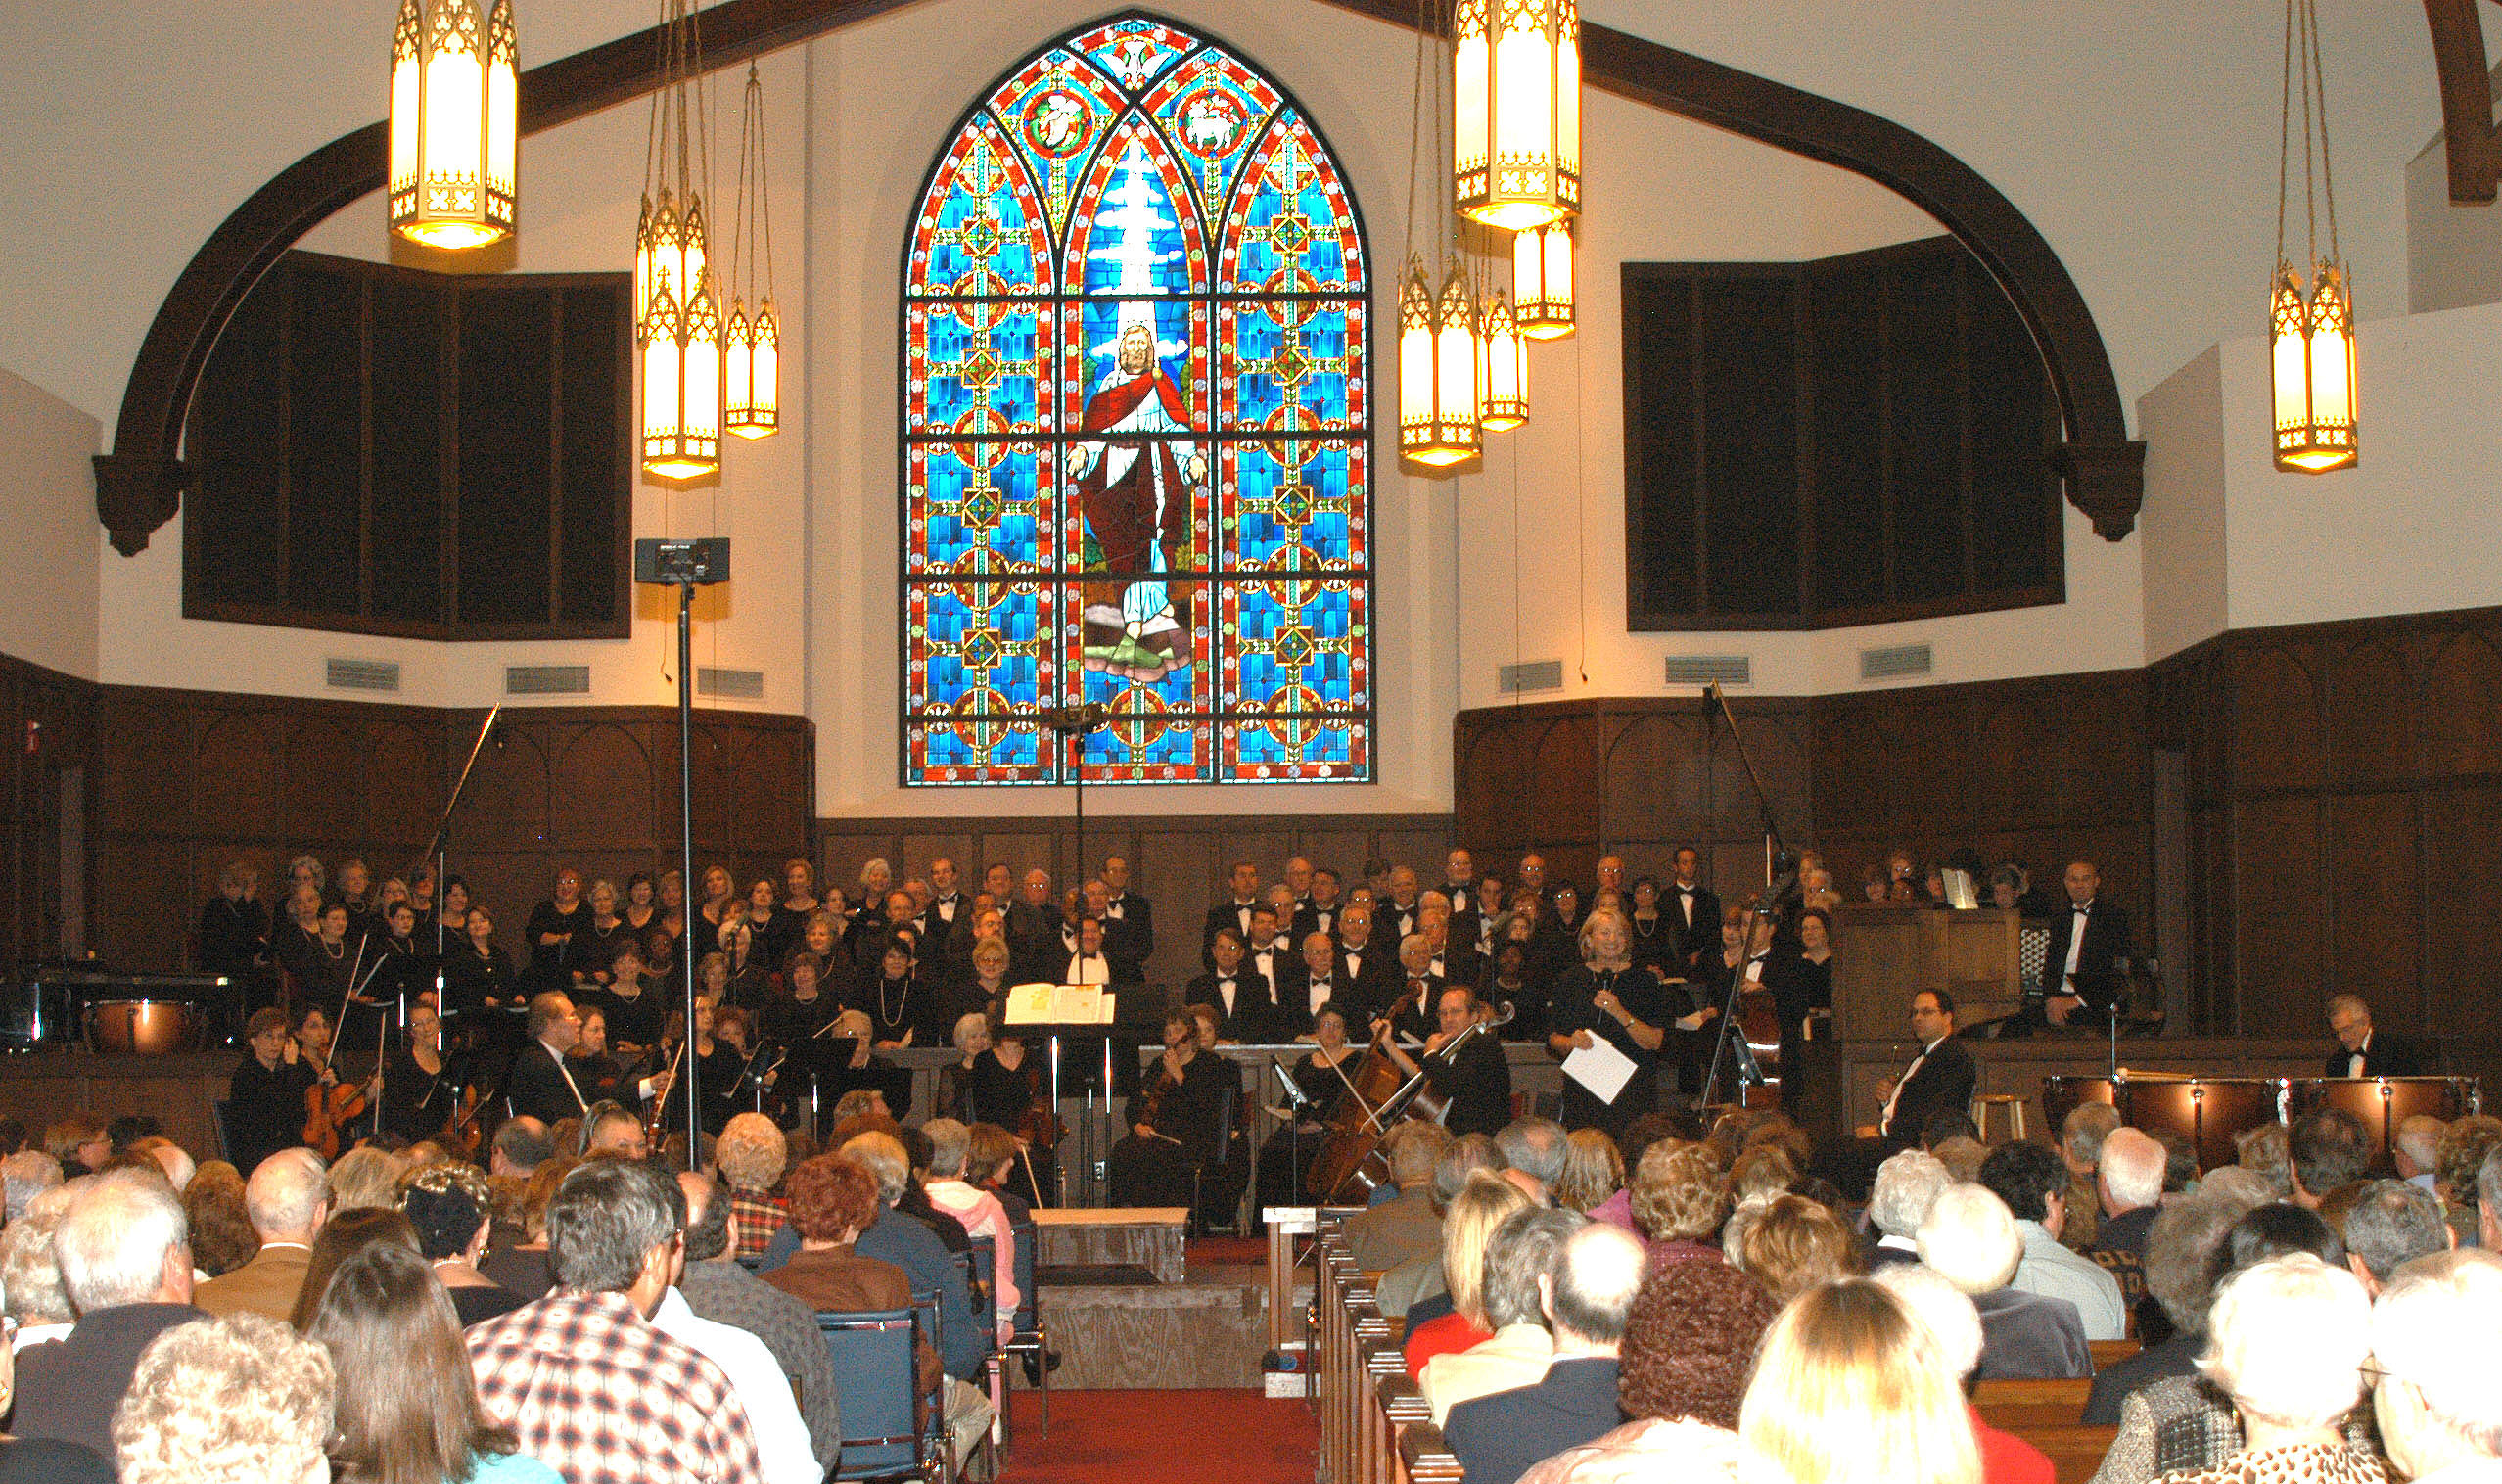 72nd Annual Presentation of Handel's MESSIAH